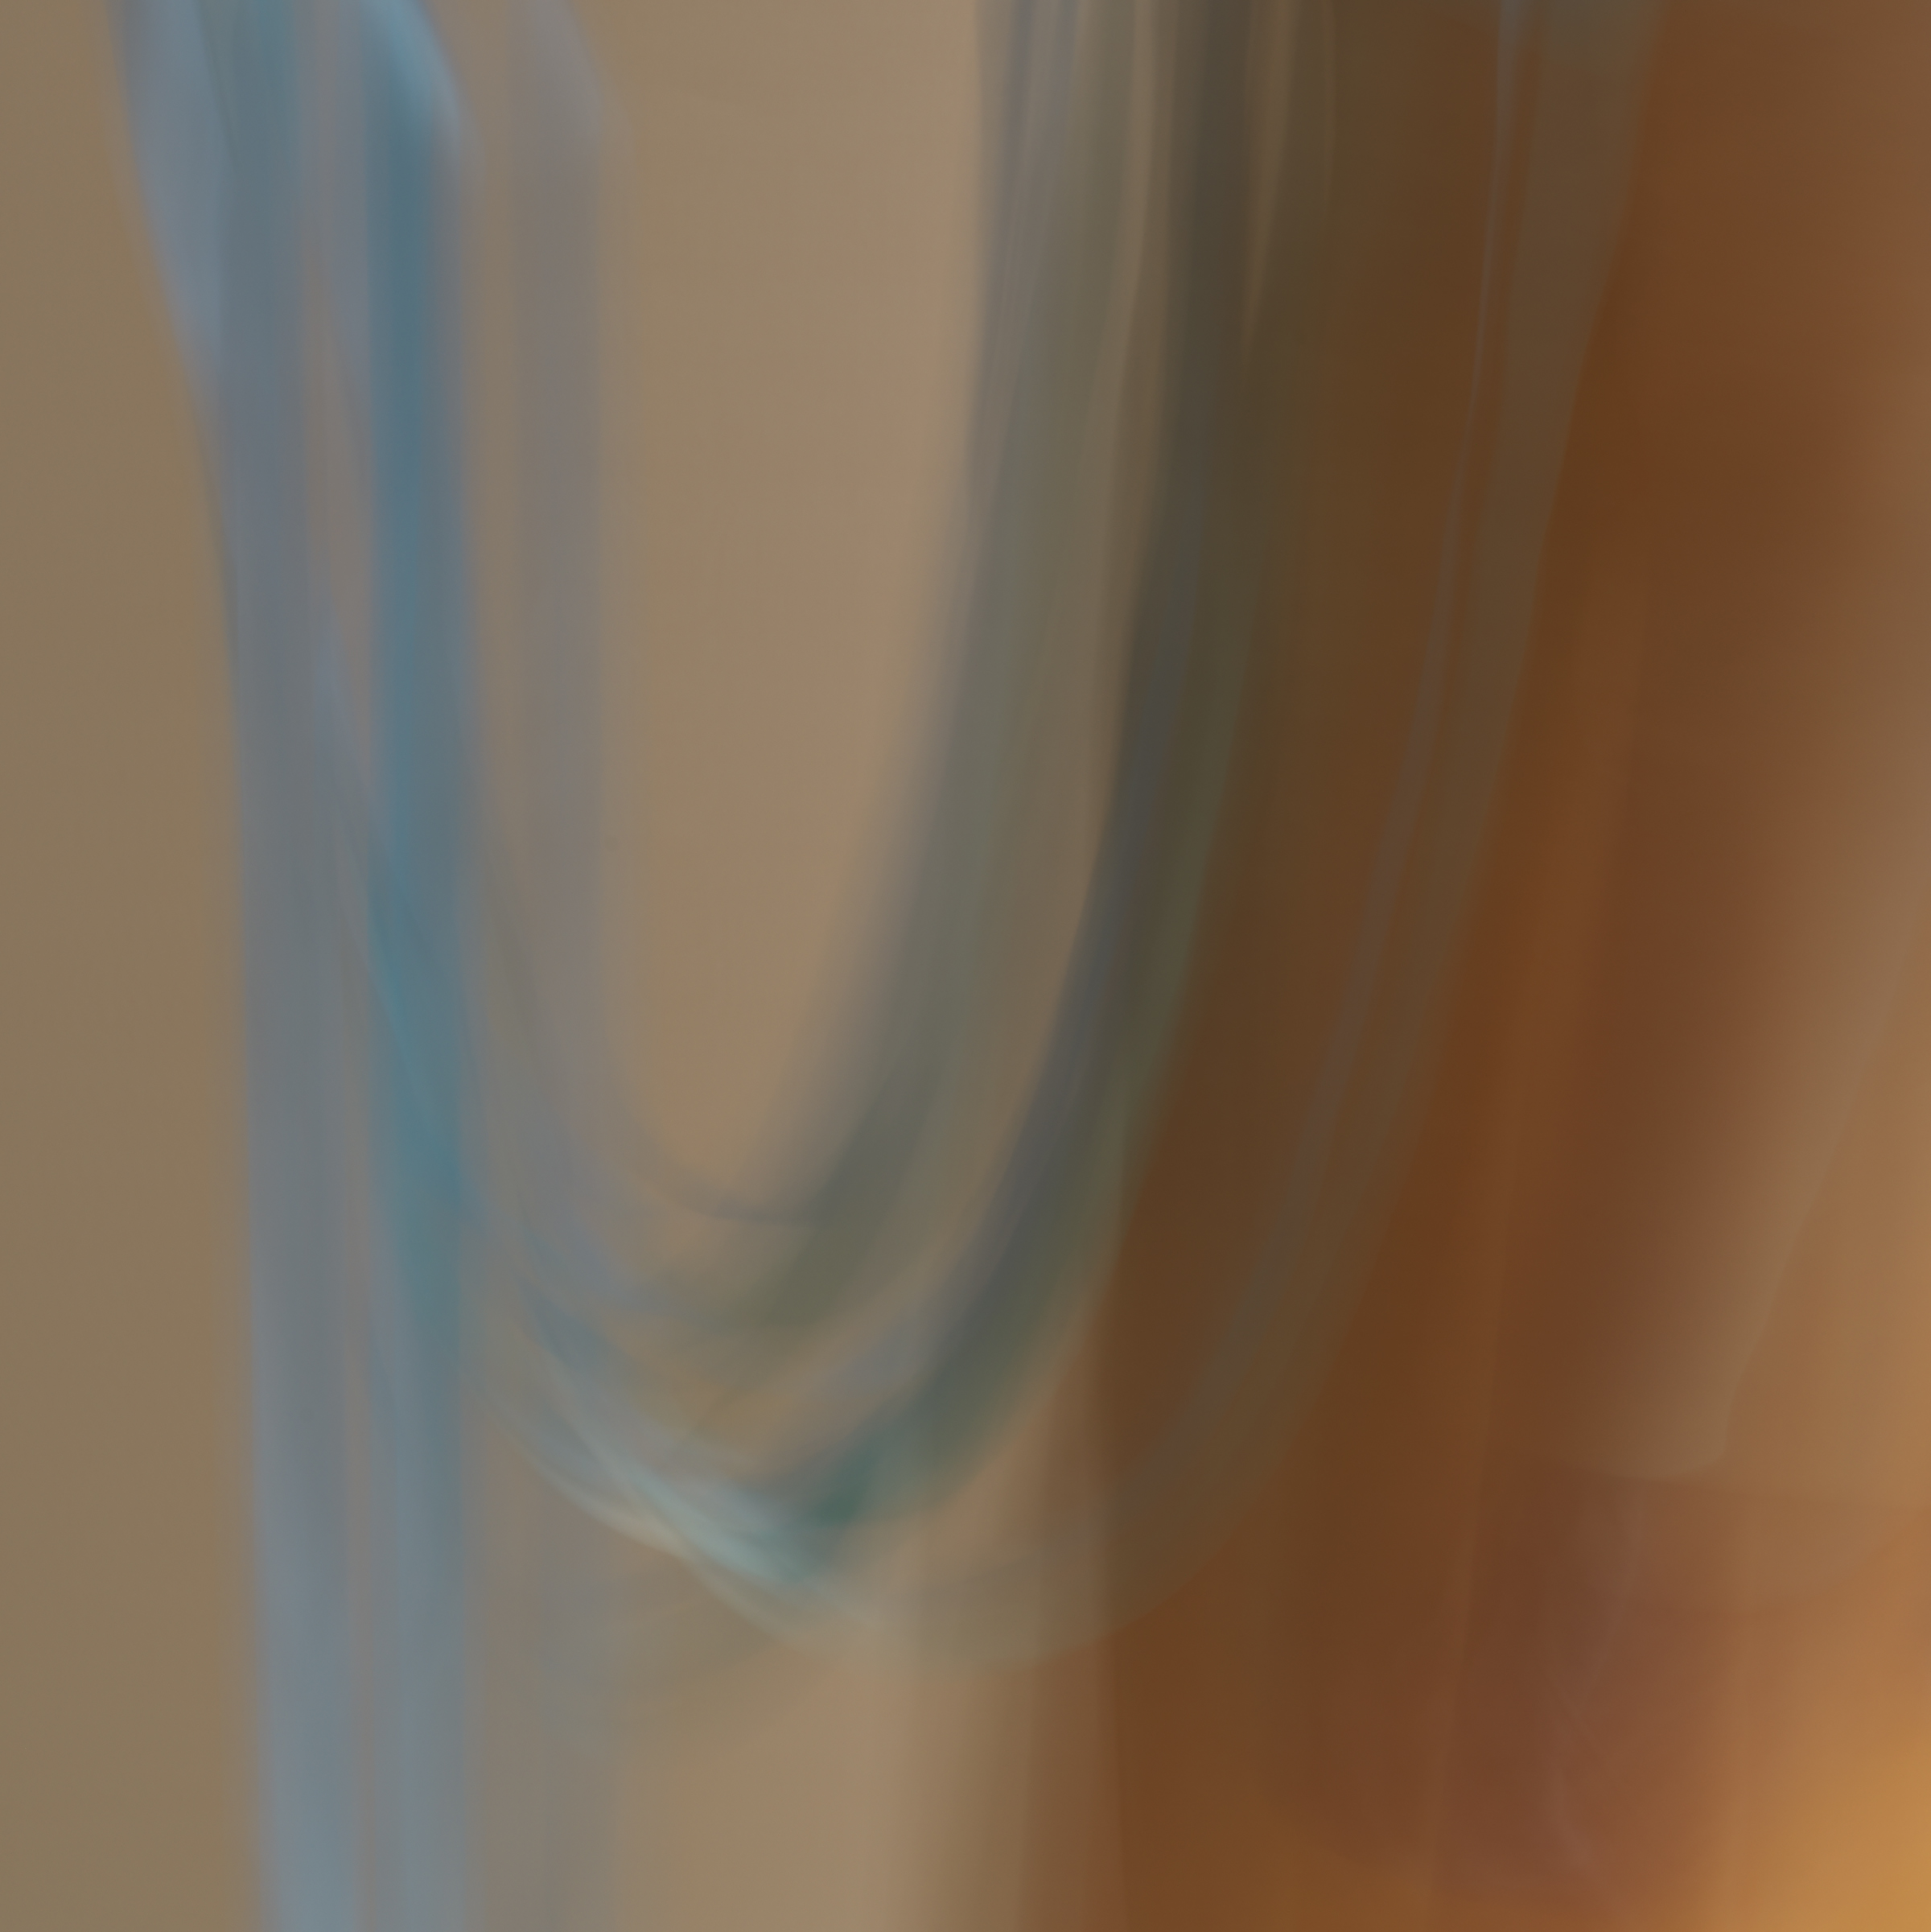 cool reason, 8, 2014 20 x 20 in. Archival pigment print on Canson paper Edition of 5